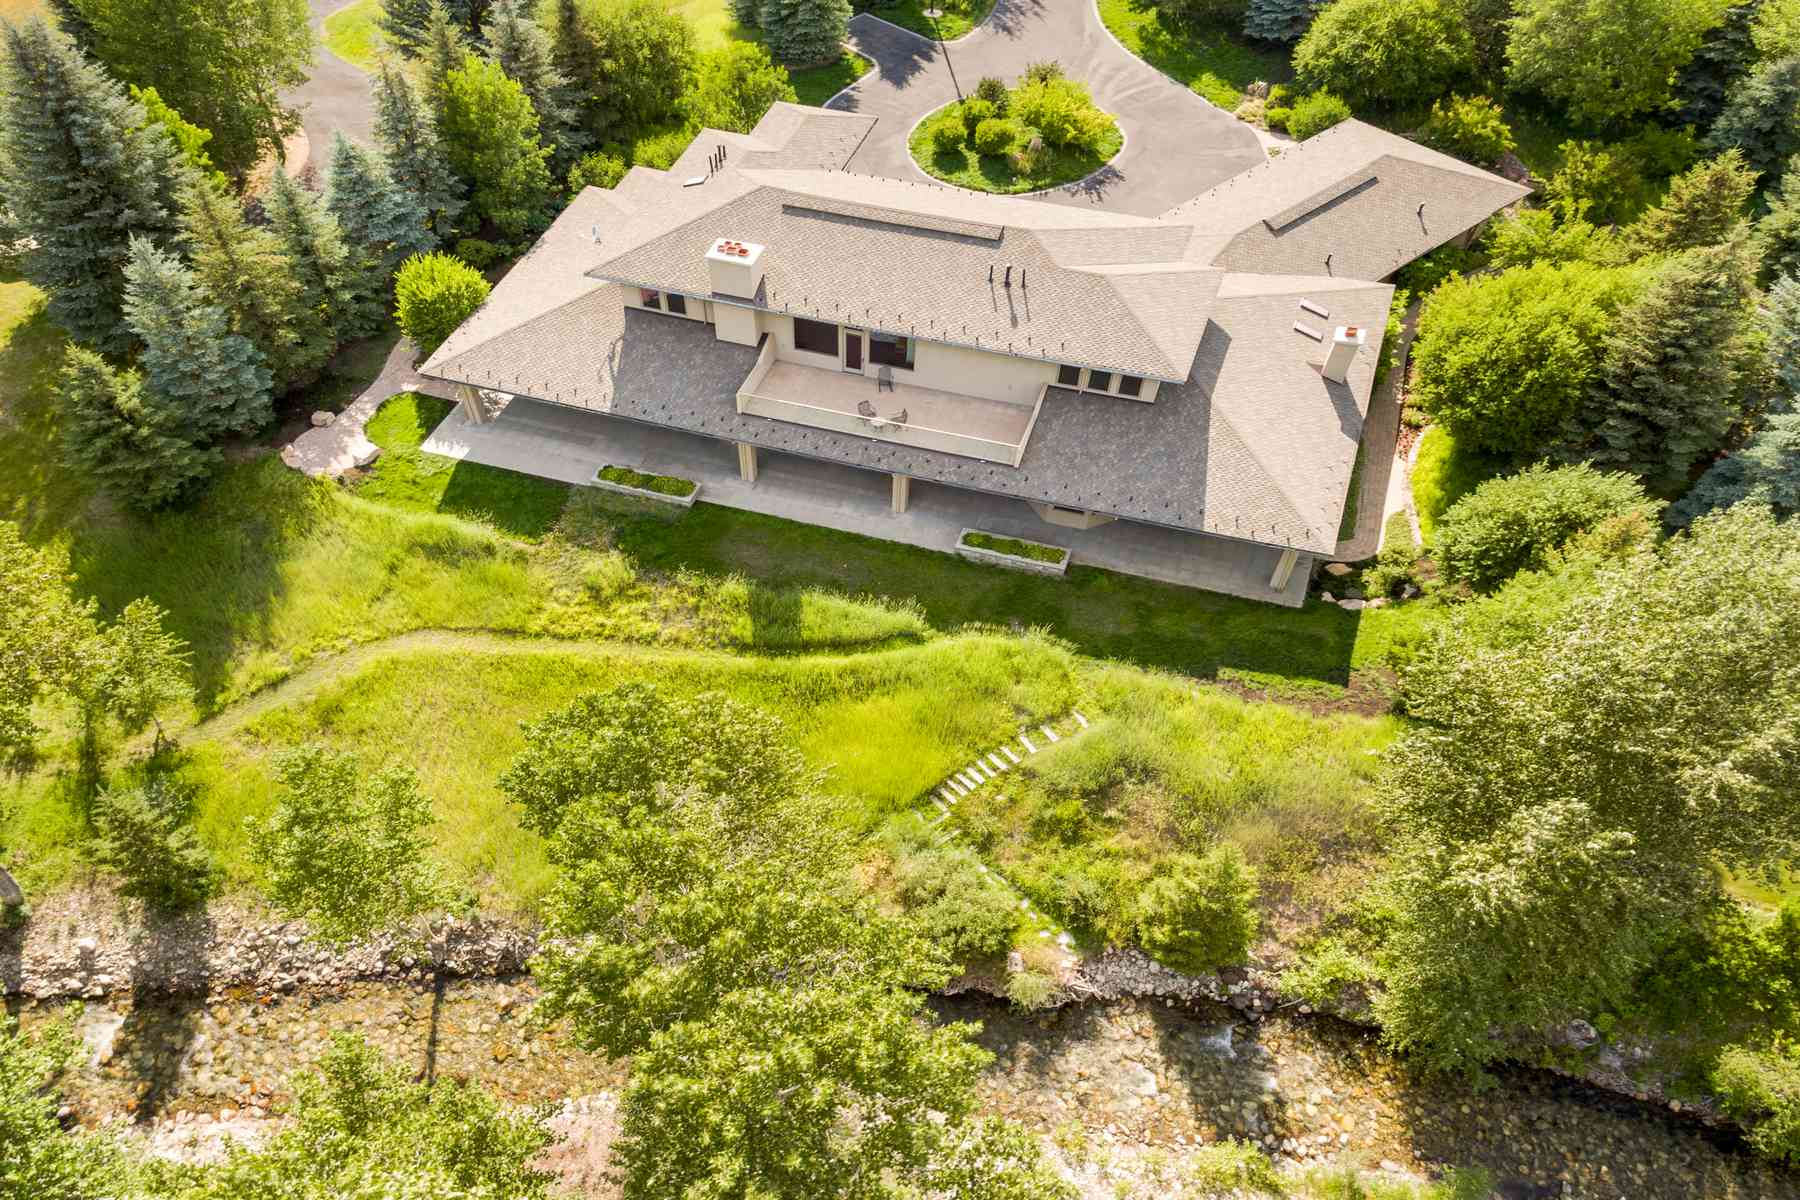 Single Family Home for Sale at One of a kind Contemporary Home 205 Canyon Road Sun Valley, Idaho 83353 United States